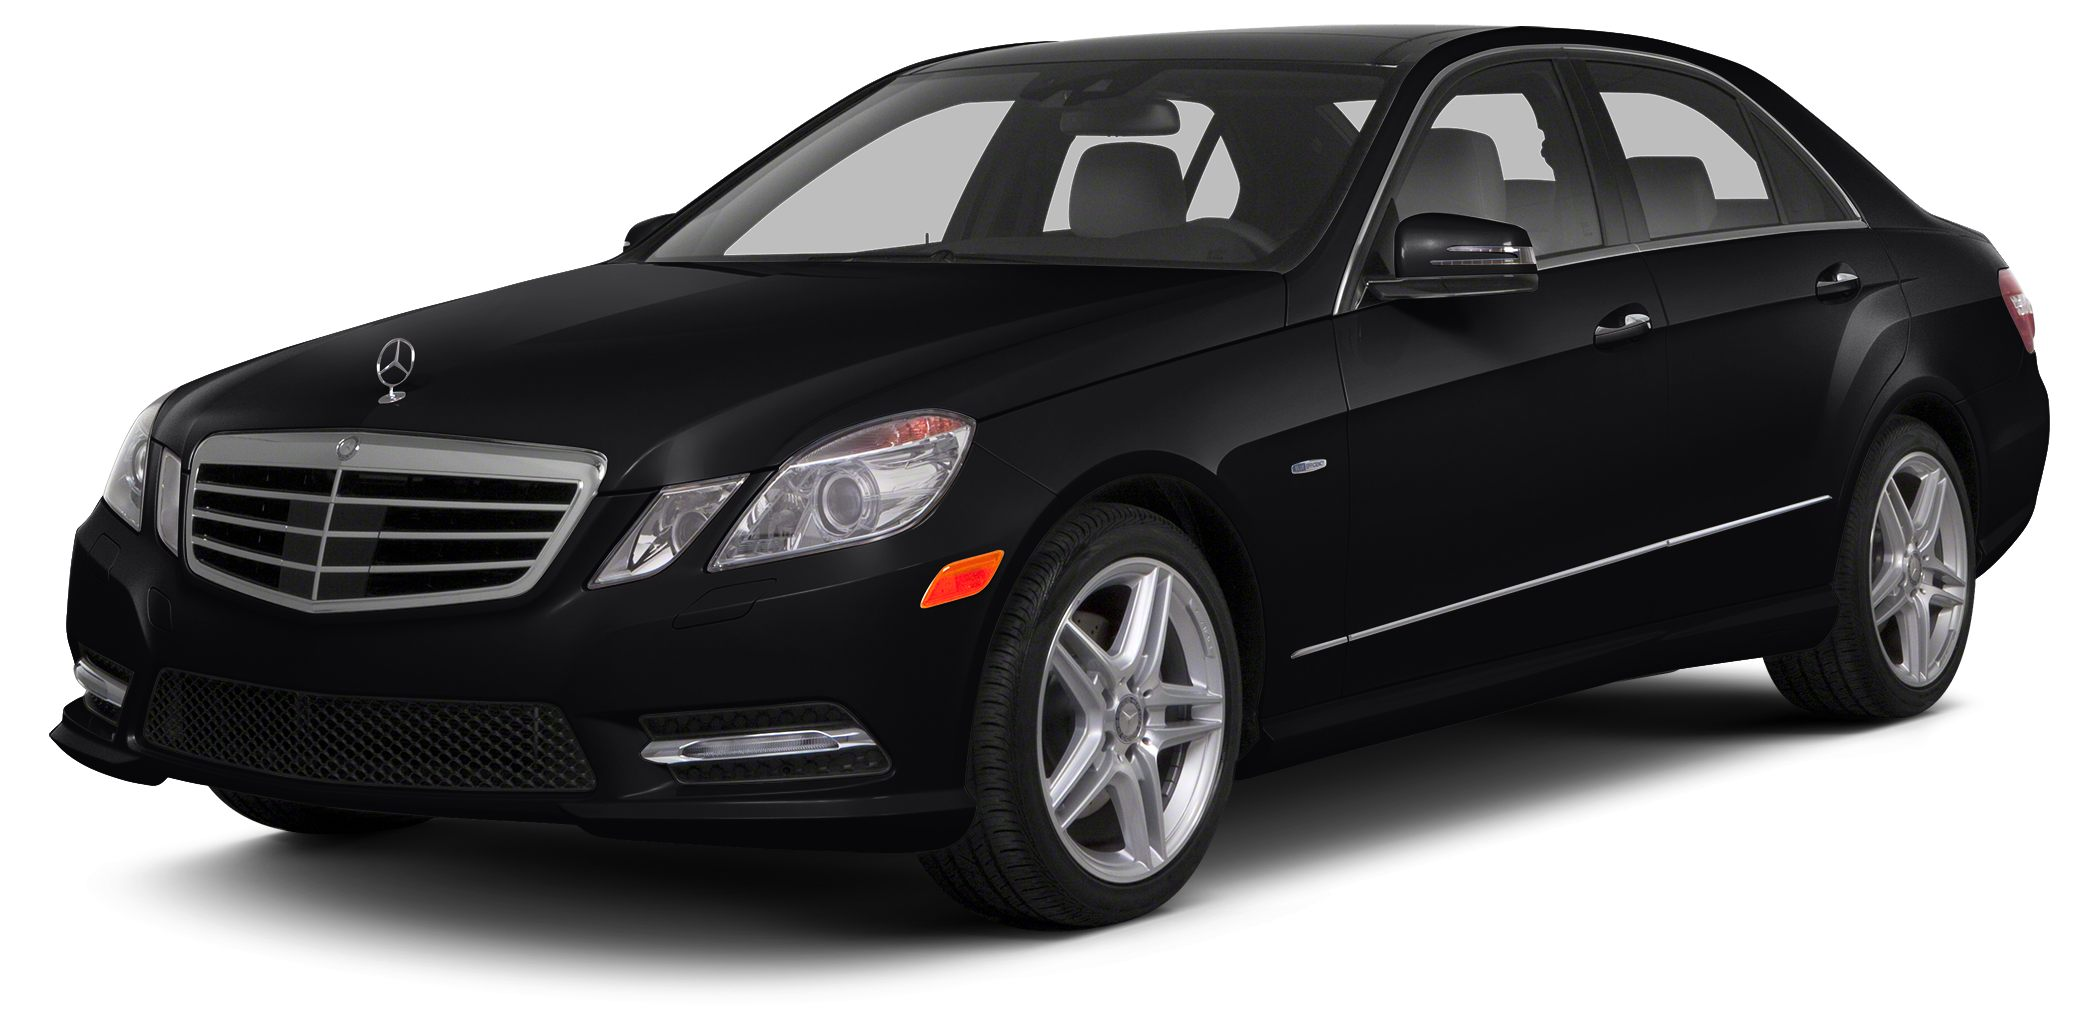 2013 MERCEDES E-Class E350 4MATIC ONLY 8927 Miles E350 Sport trim PRICE DROP FROM 45988 FUEL